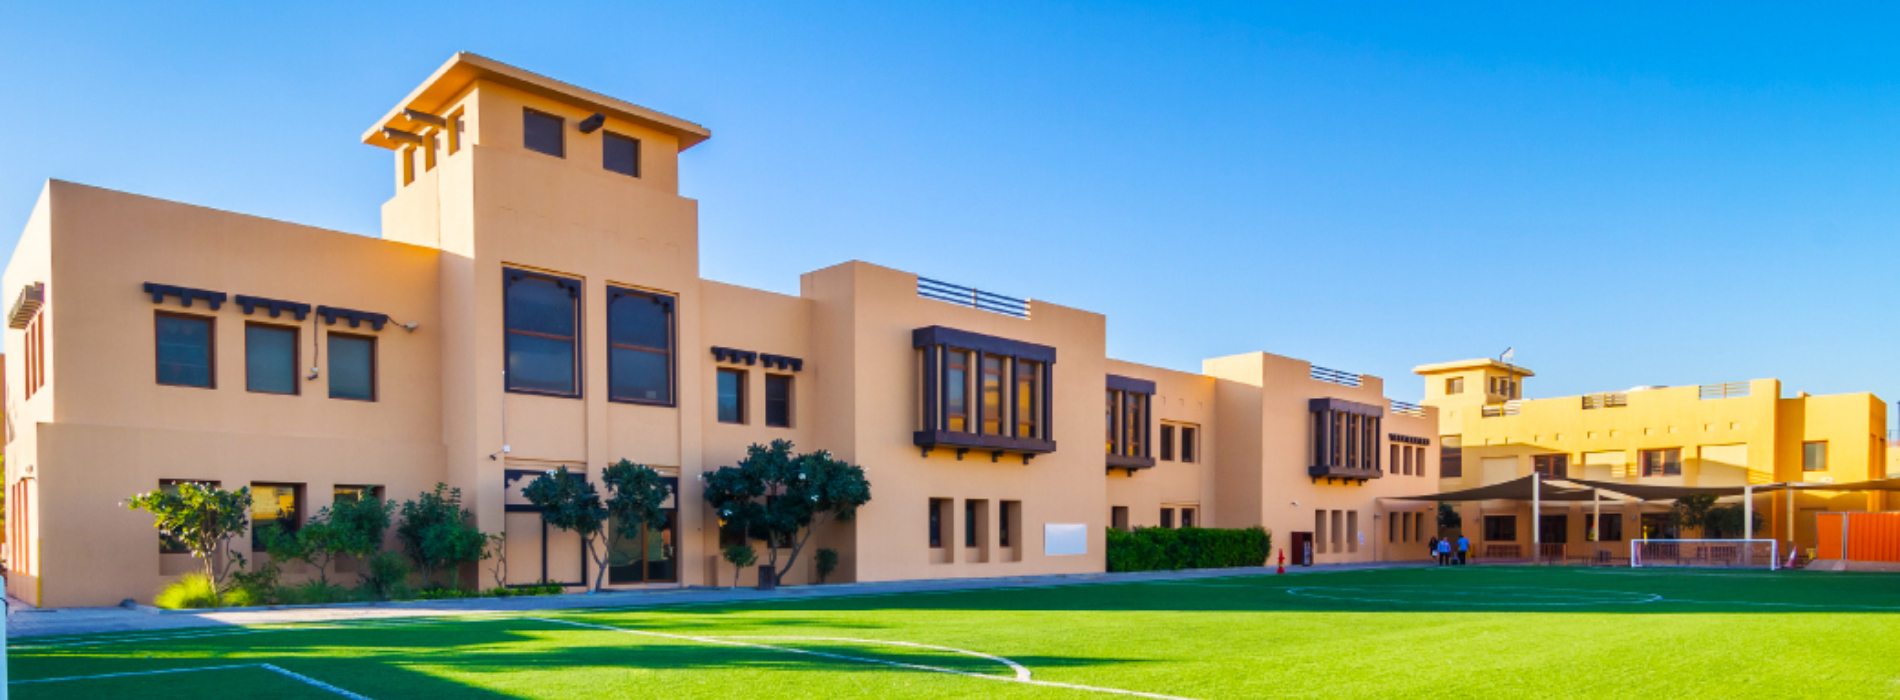 The best schools in Abu Dhabi